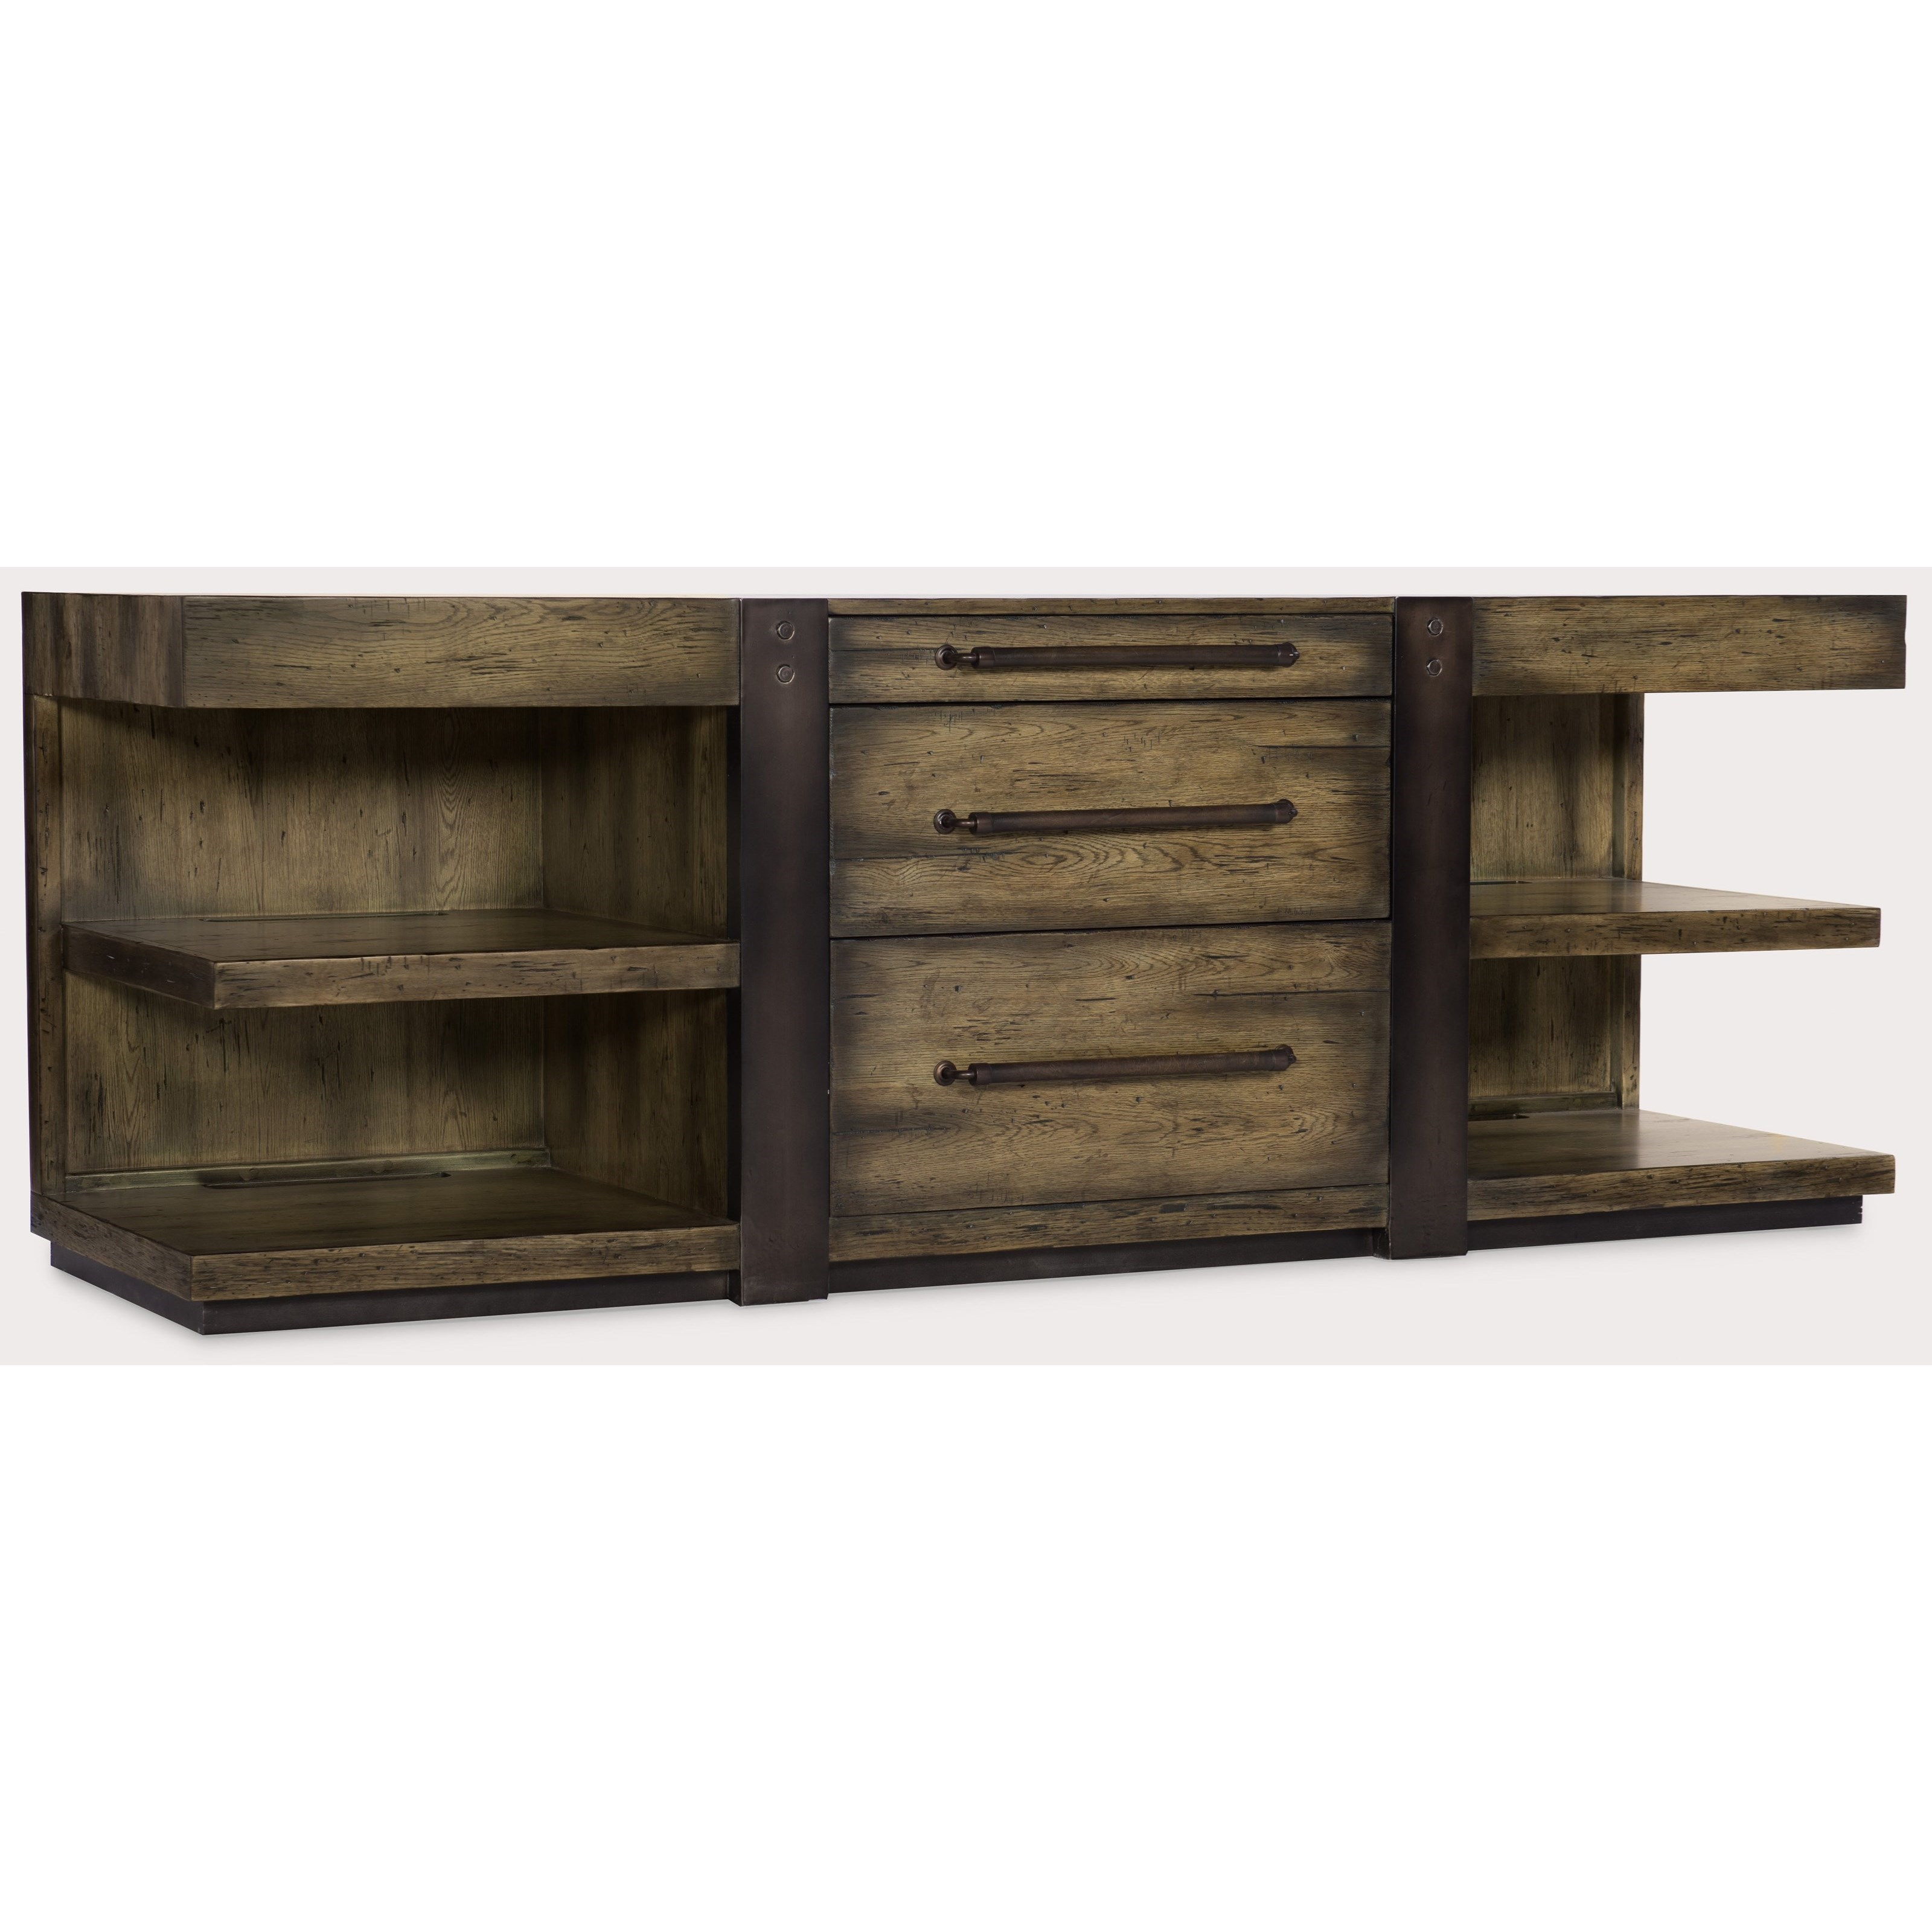 American Life-Crafted Leg Desk Credenza at Williams & Kay